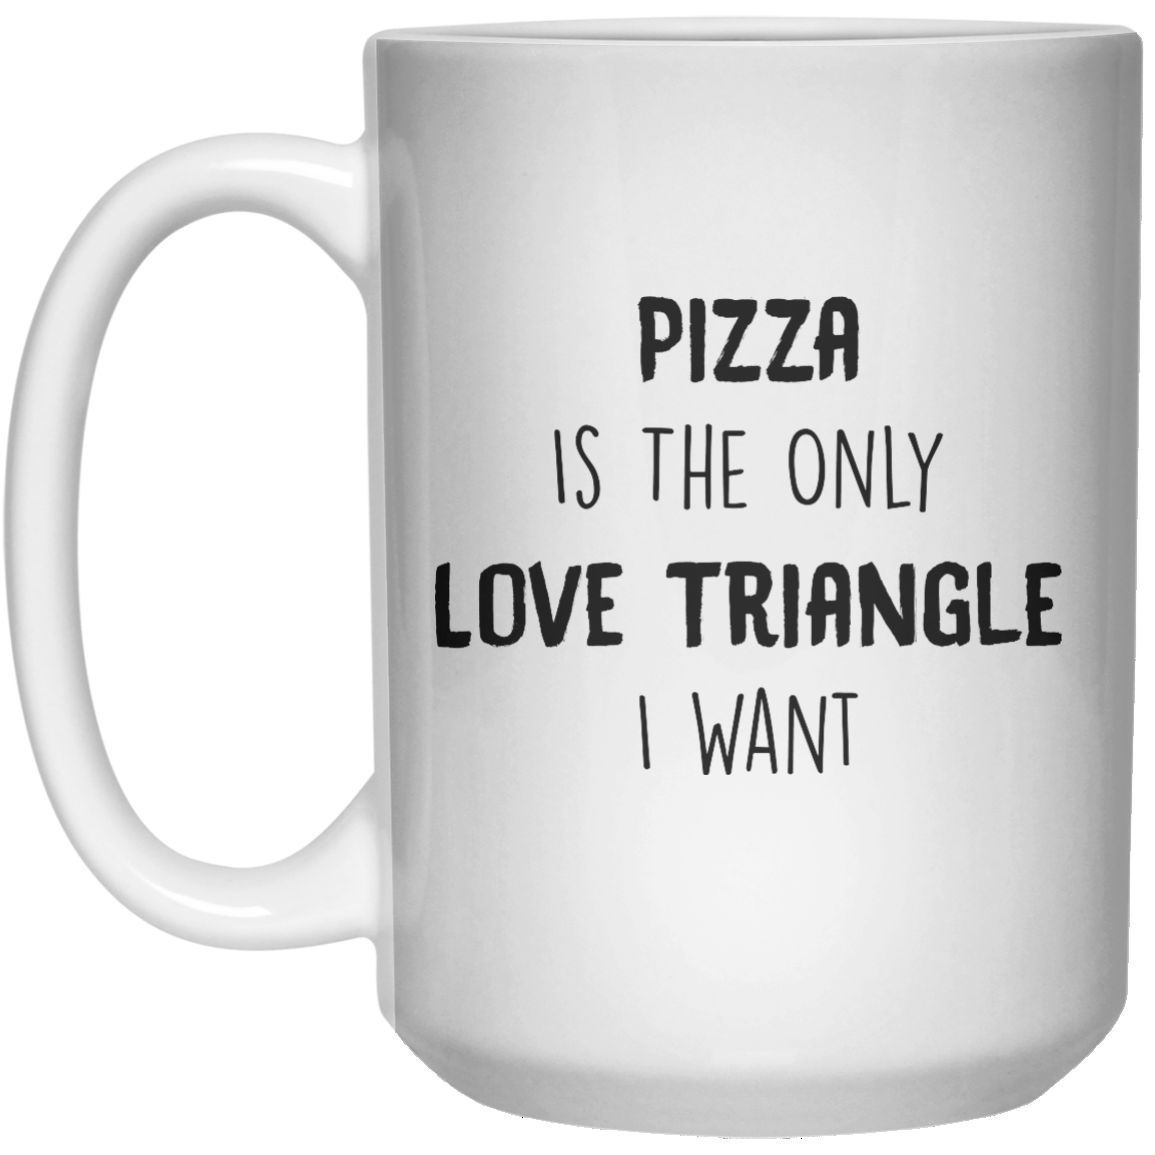 Pizza Is The Only Love Triangle I Want MUG Mug - 15oz